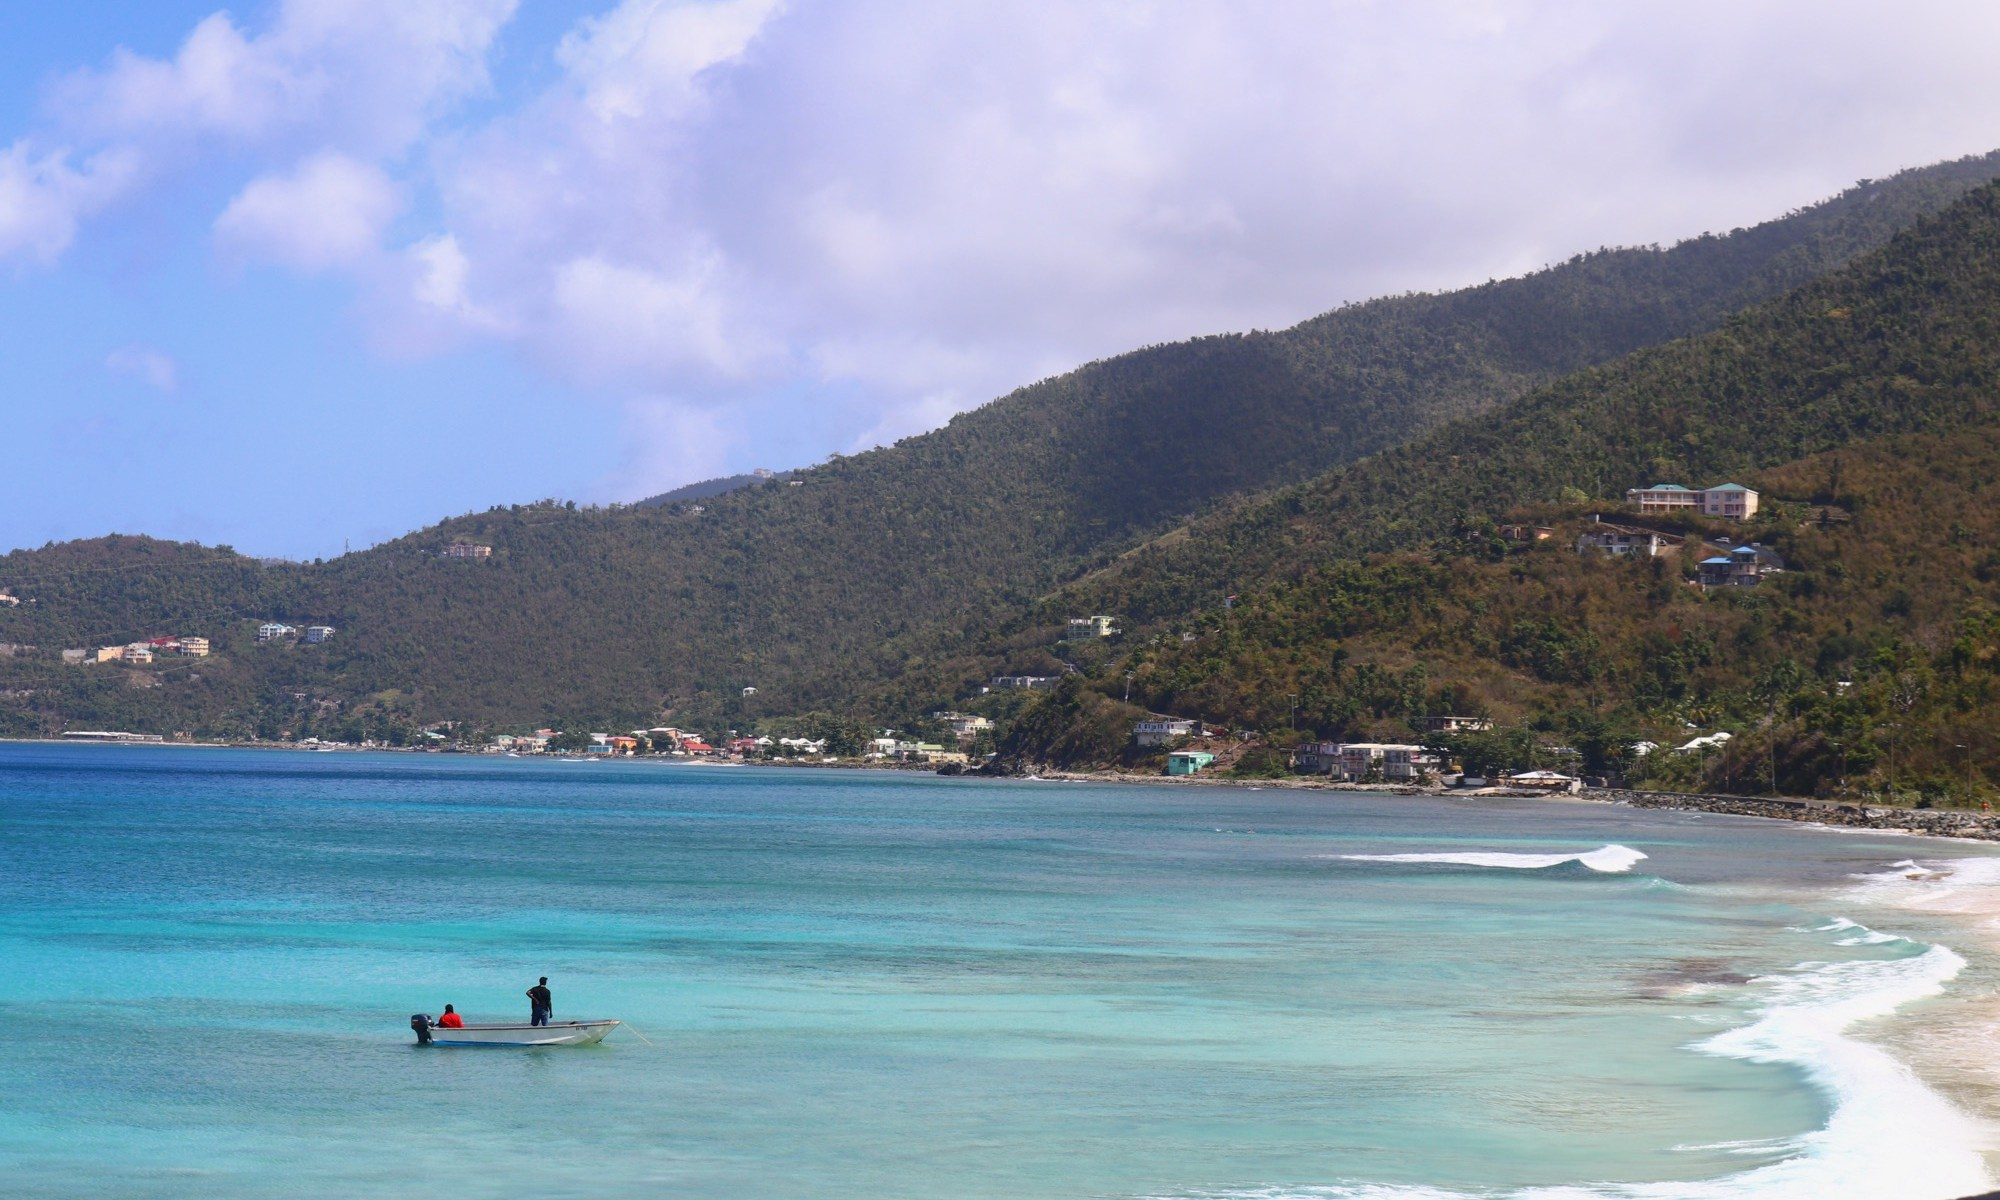 Apple Bay Tortola on a calm morning